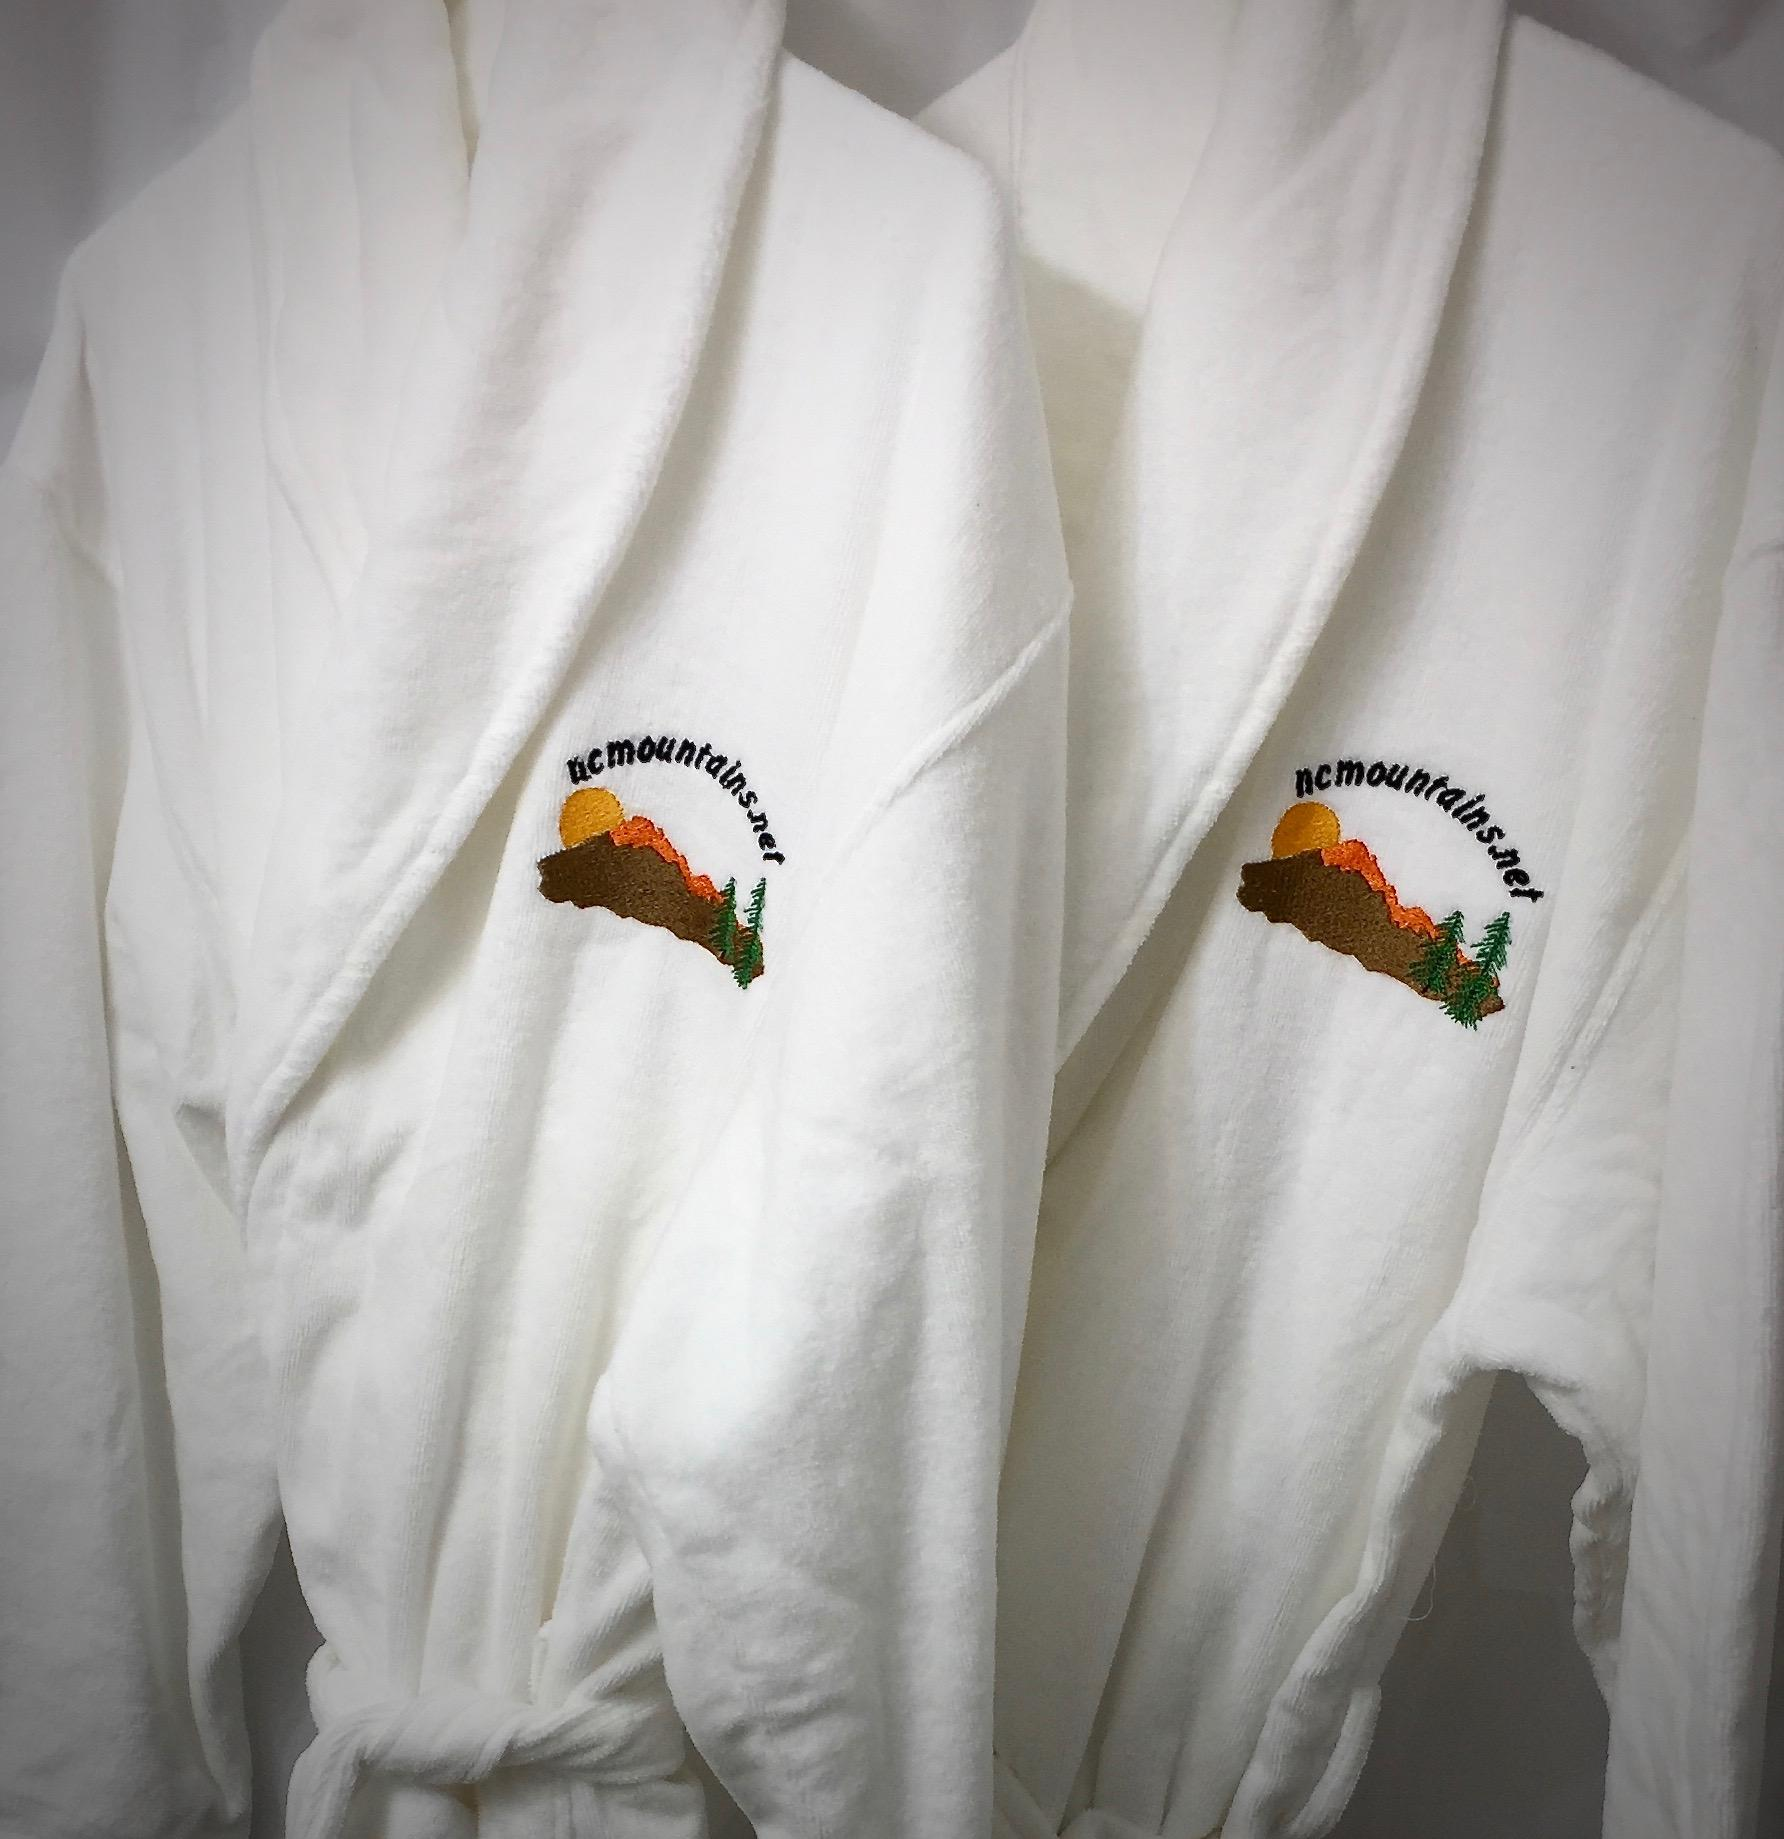 2 Plush Bathrobes are provided for use during your stay.